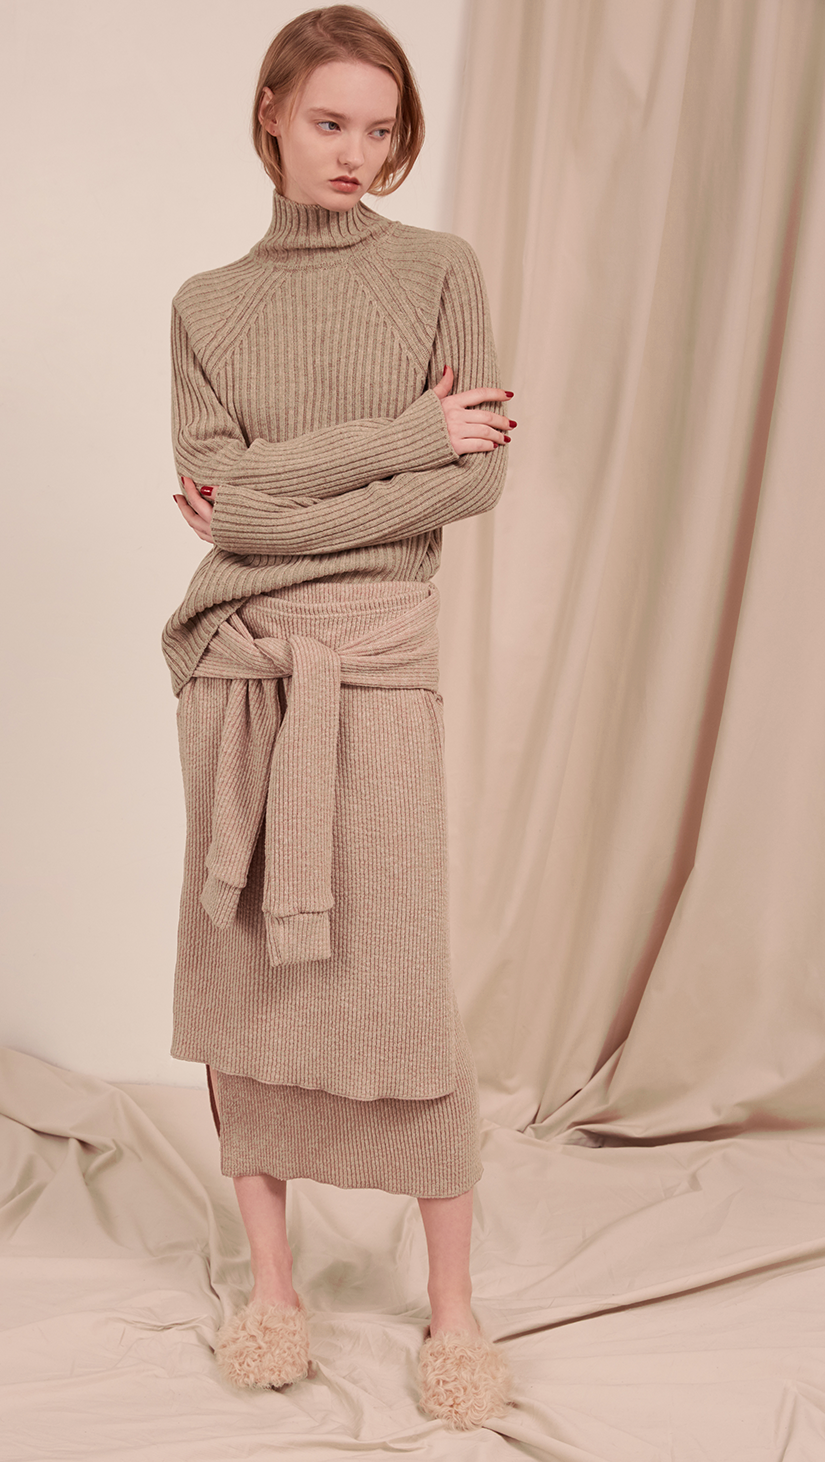 The Natalie Skirt in oatmeal beige. With double layer in ribbed knit, self wrap tie, gathered elastic waistband, deep side slits. Pull on.